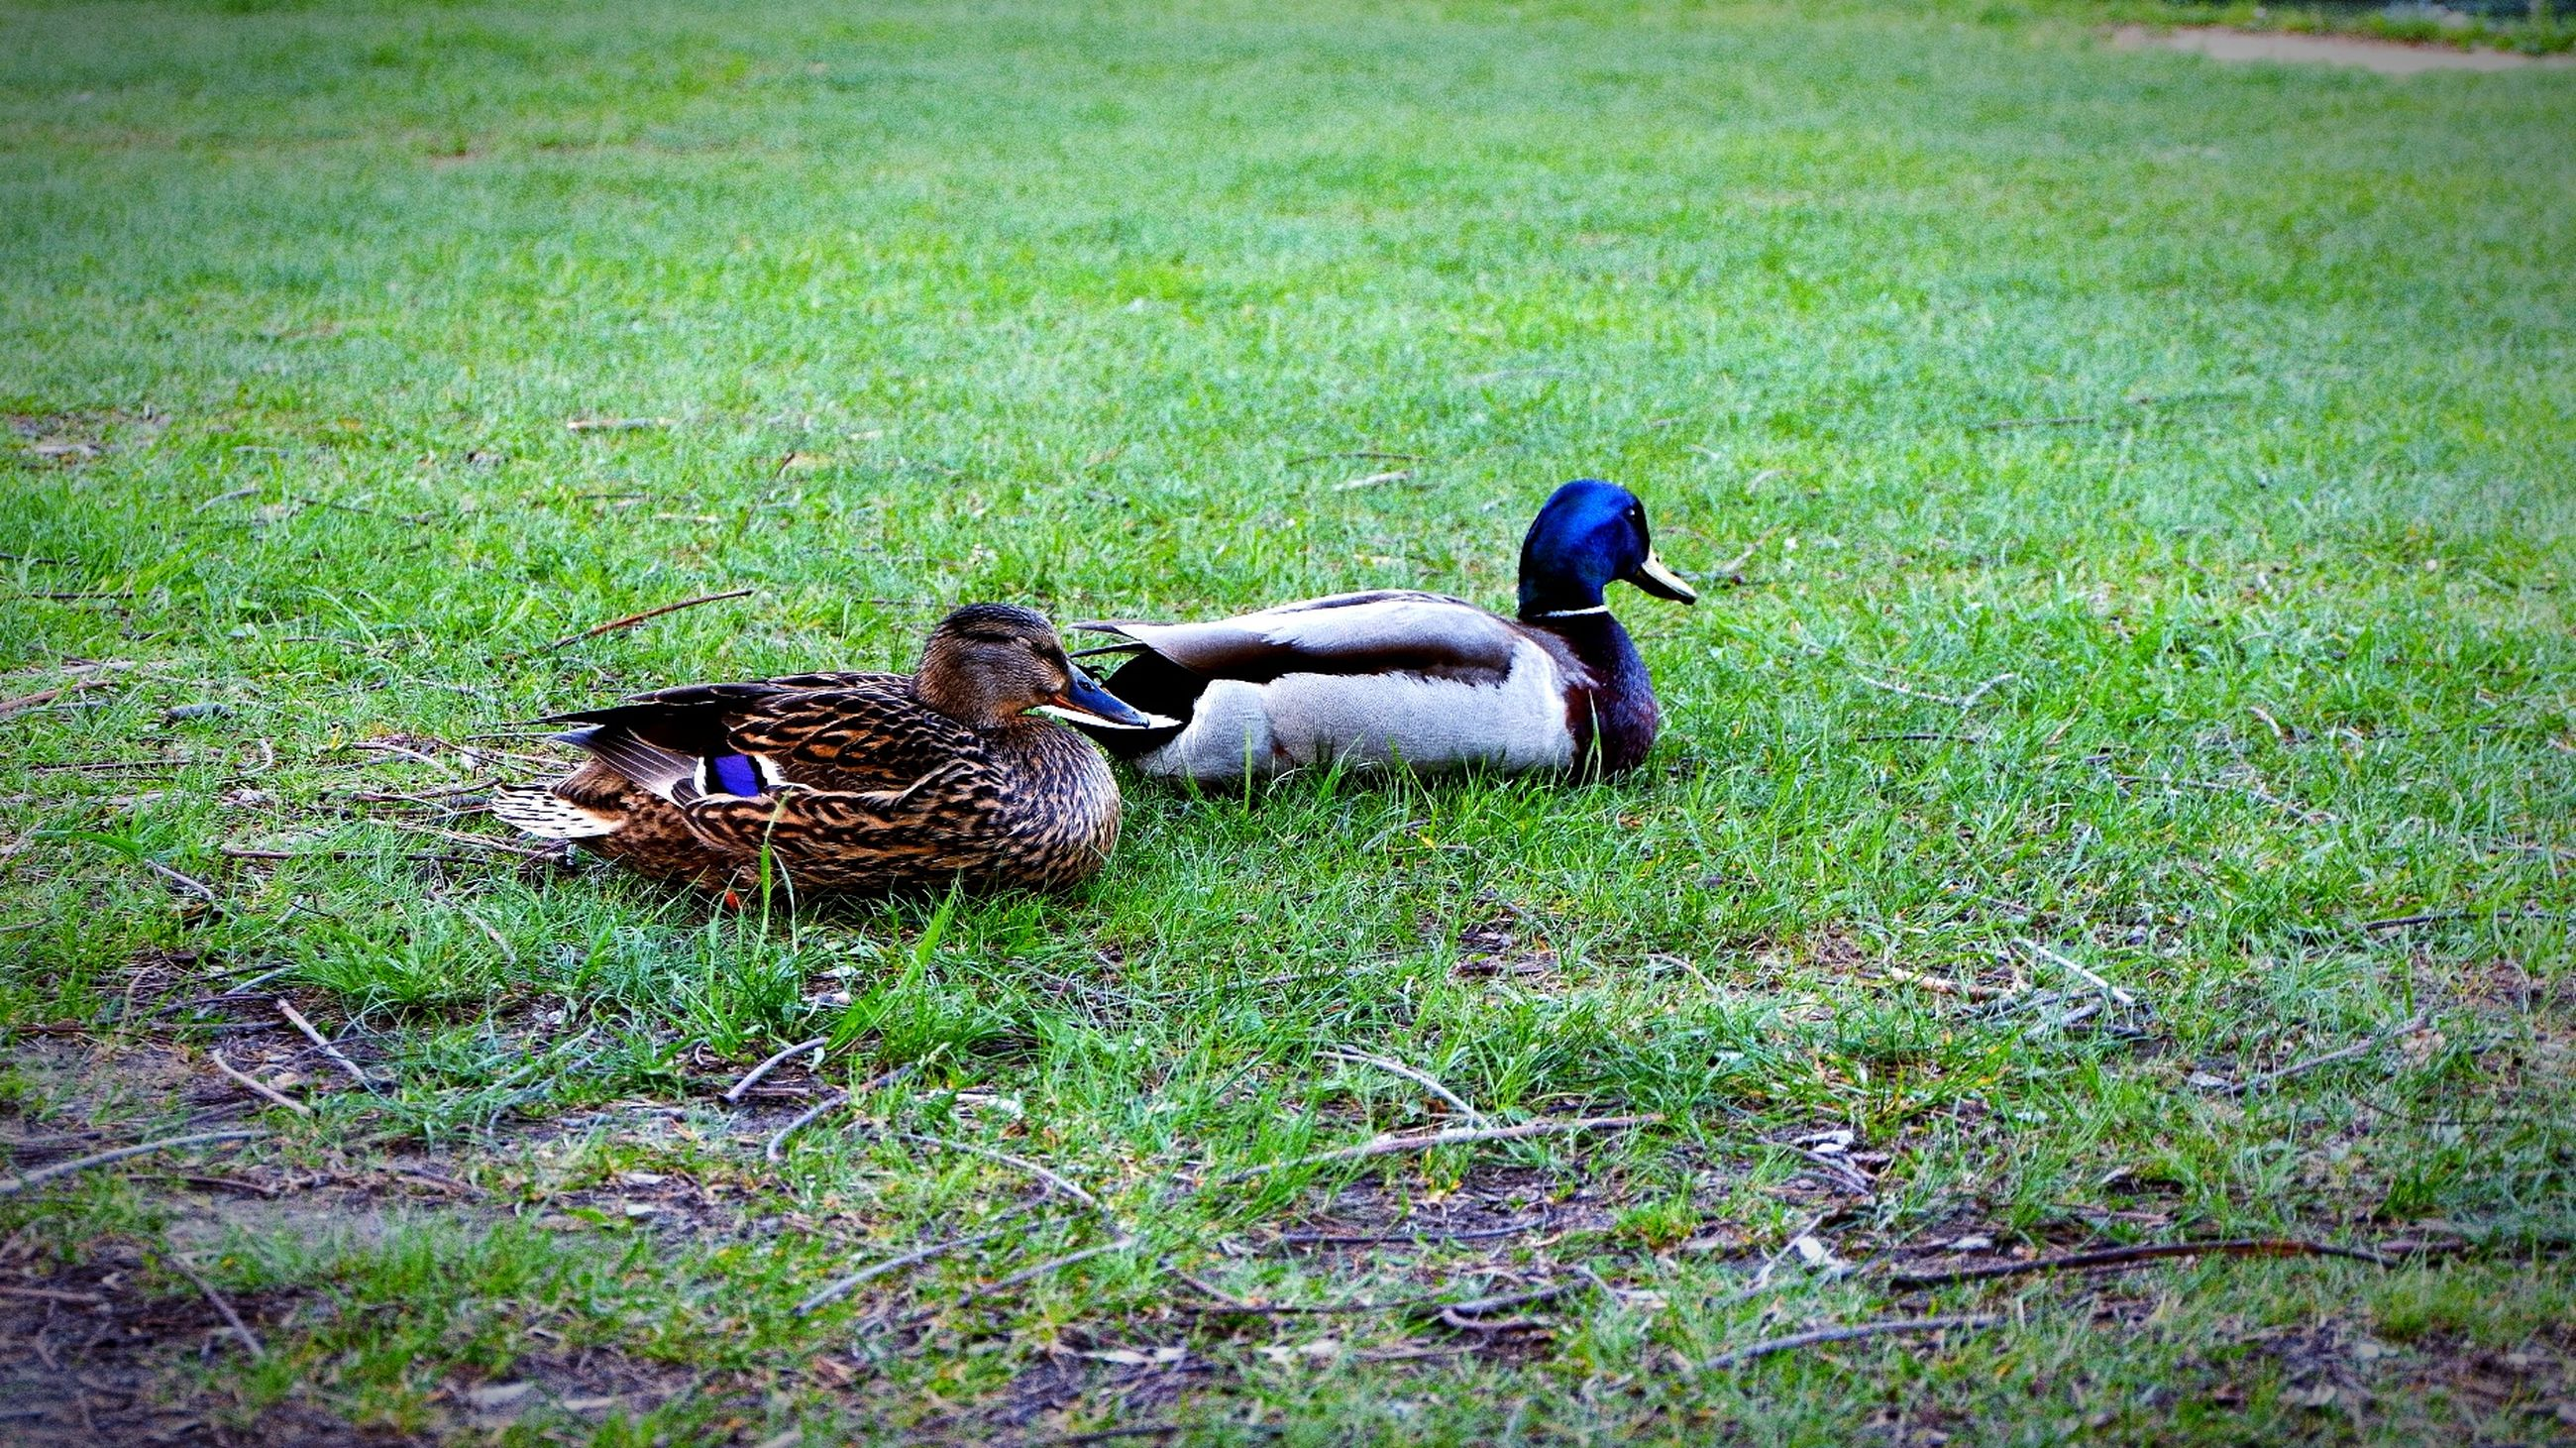 grass, bird, animal themes, vertebrate, animal, plant, animals in the wild, field, land, group of animals, animal wildlife, duck, poultry, green color, nature, no people, two animals, day, mallard duck, male animal, outdoors, animal family